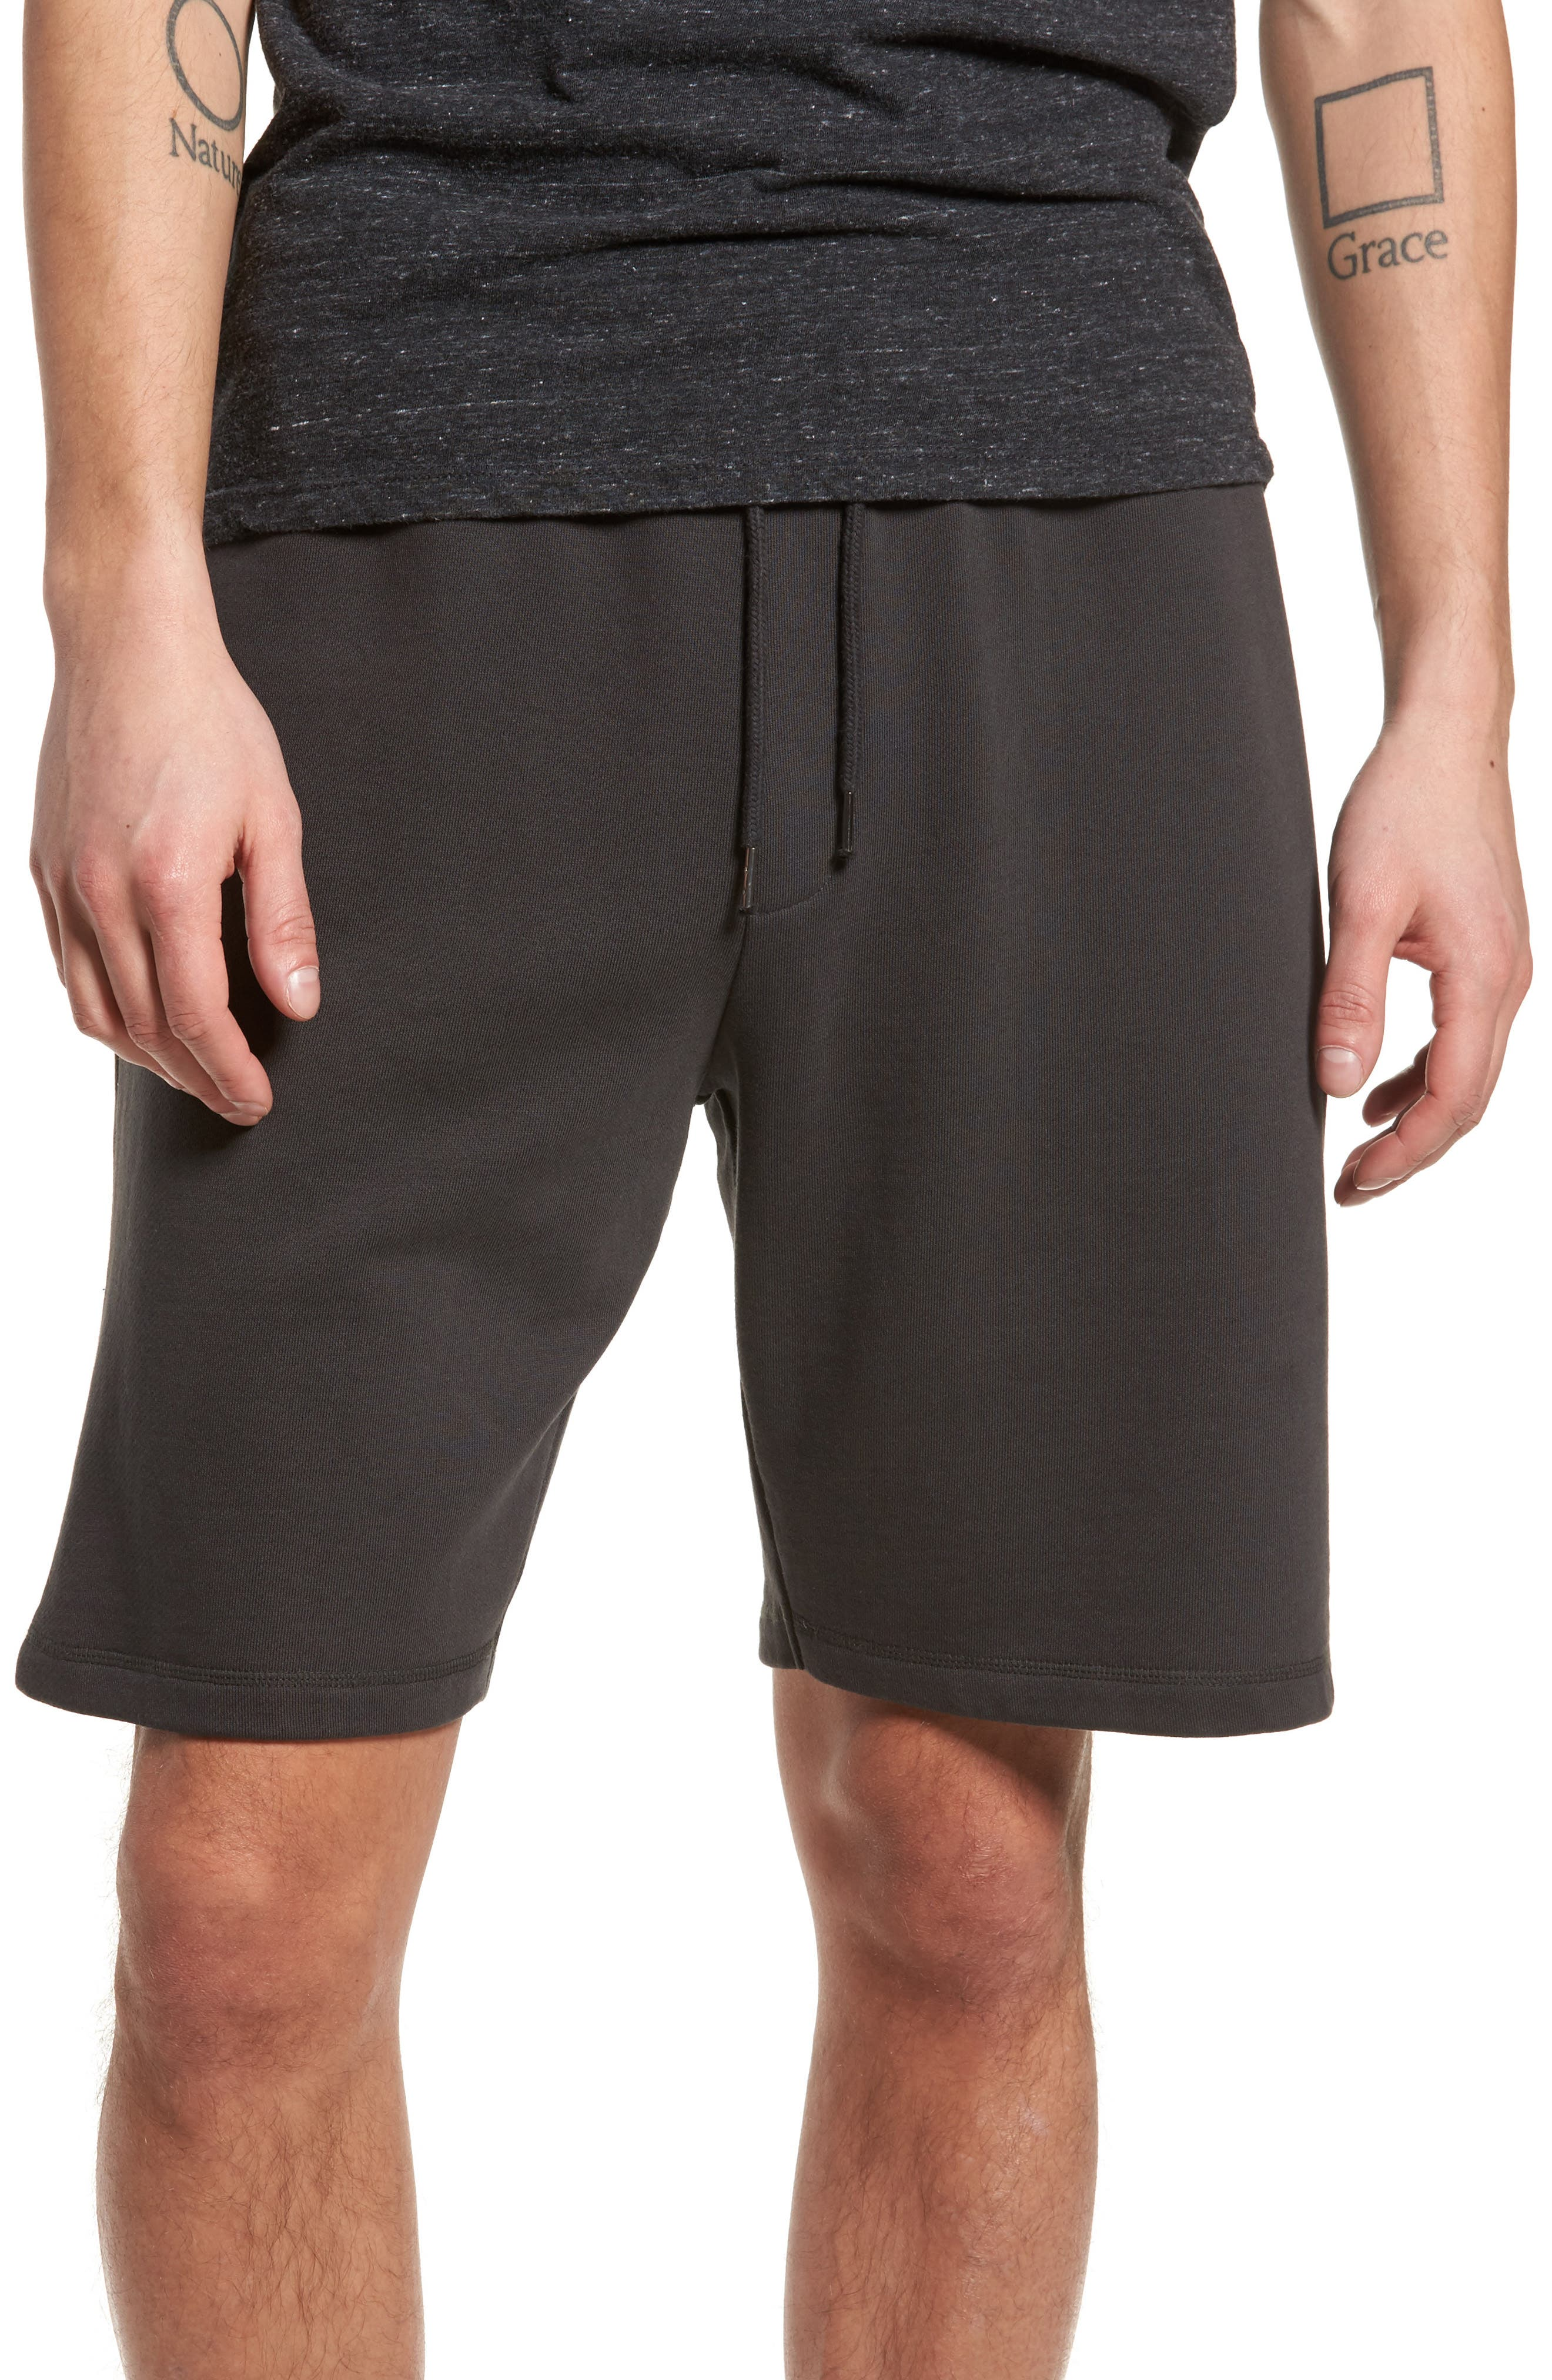 Marty Fleece Shorts,                         Main,                         color, Pirate Black